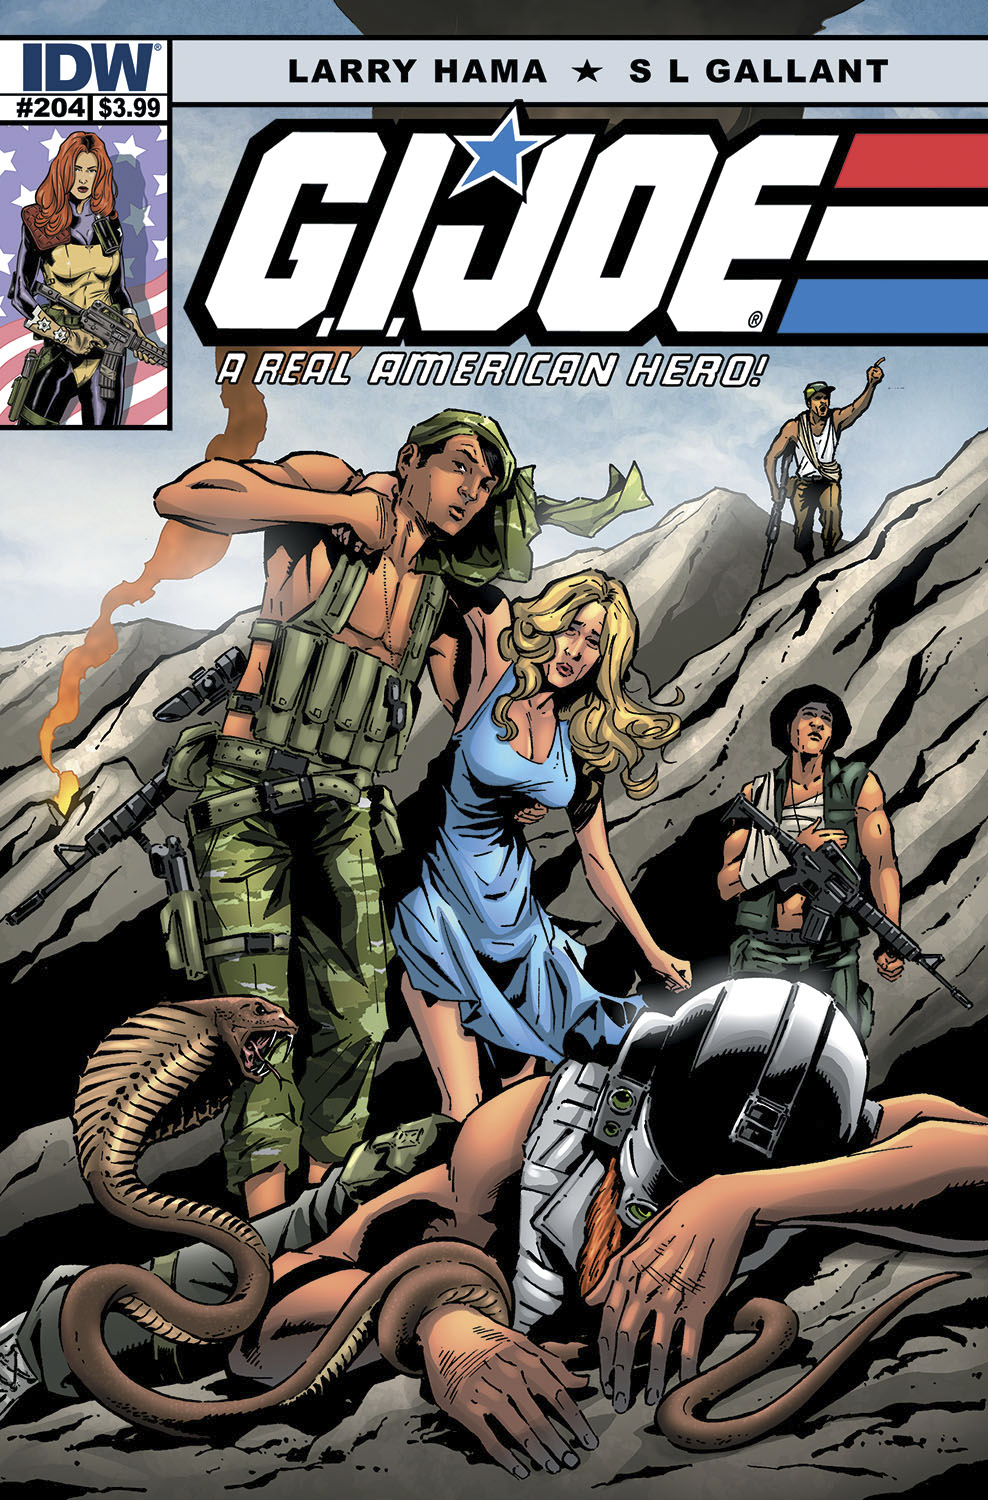 GI JOE A REAL AMERICAN HERO #204